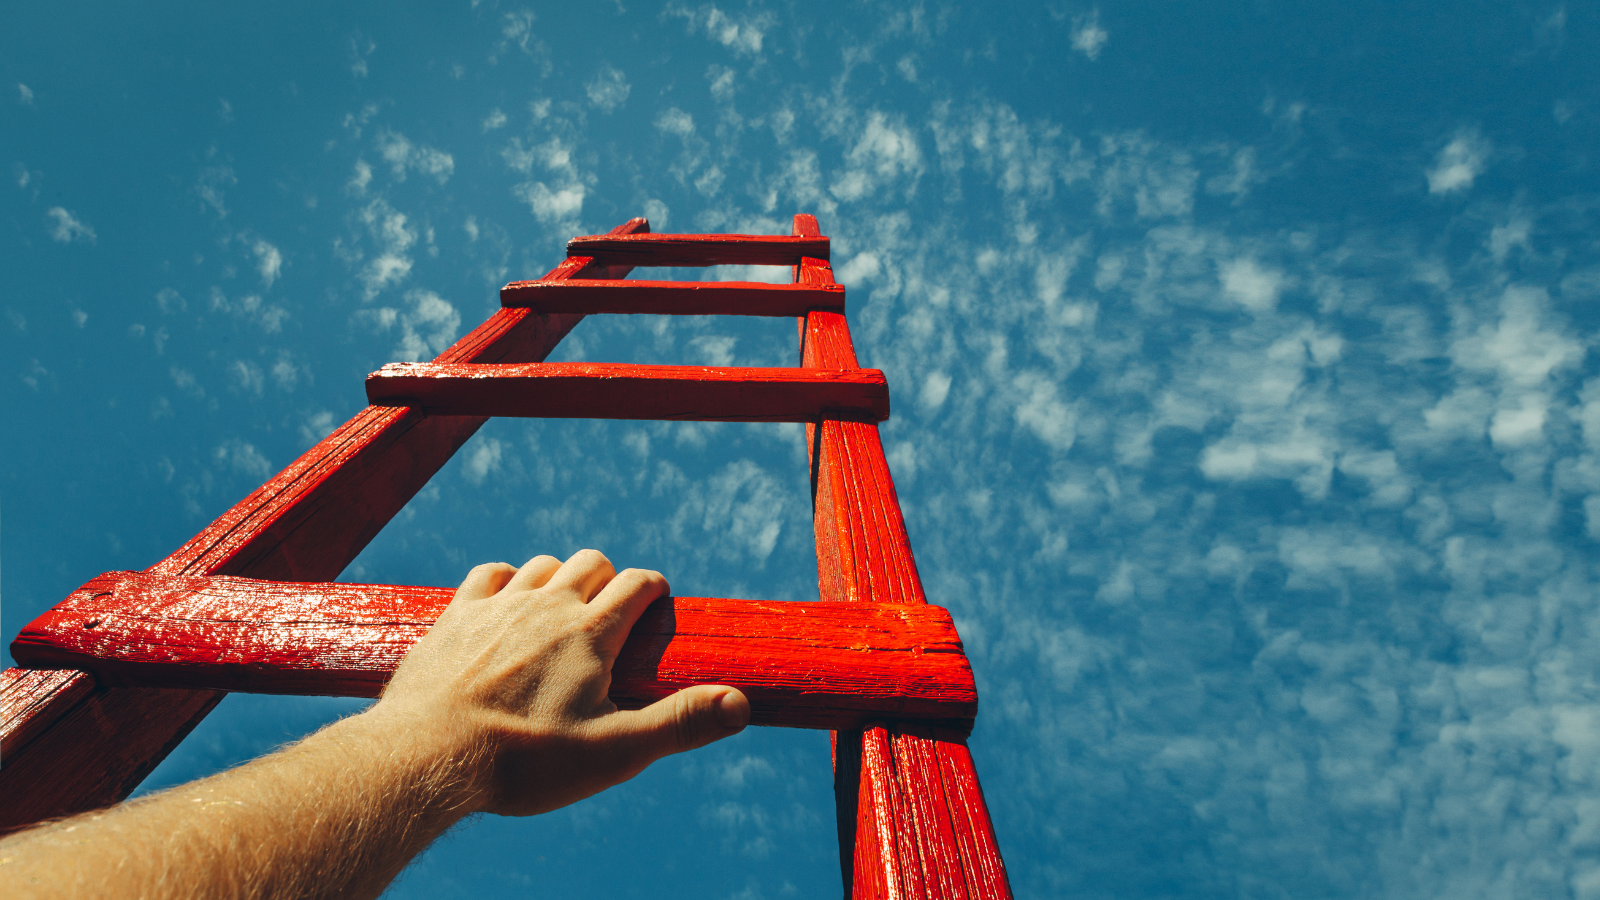 Weekly Roundup: How to Climb the Ladder, The Best Question is the One You Never Ask + More